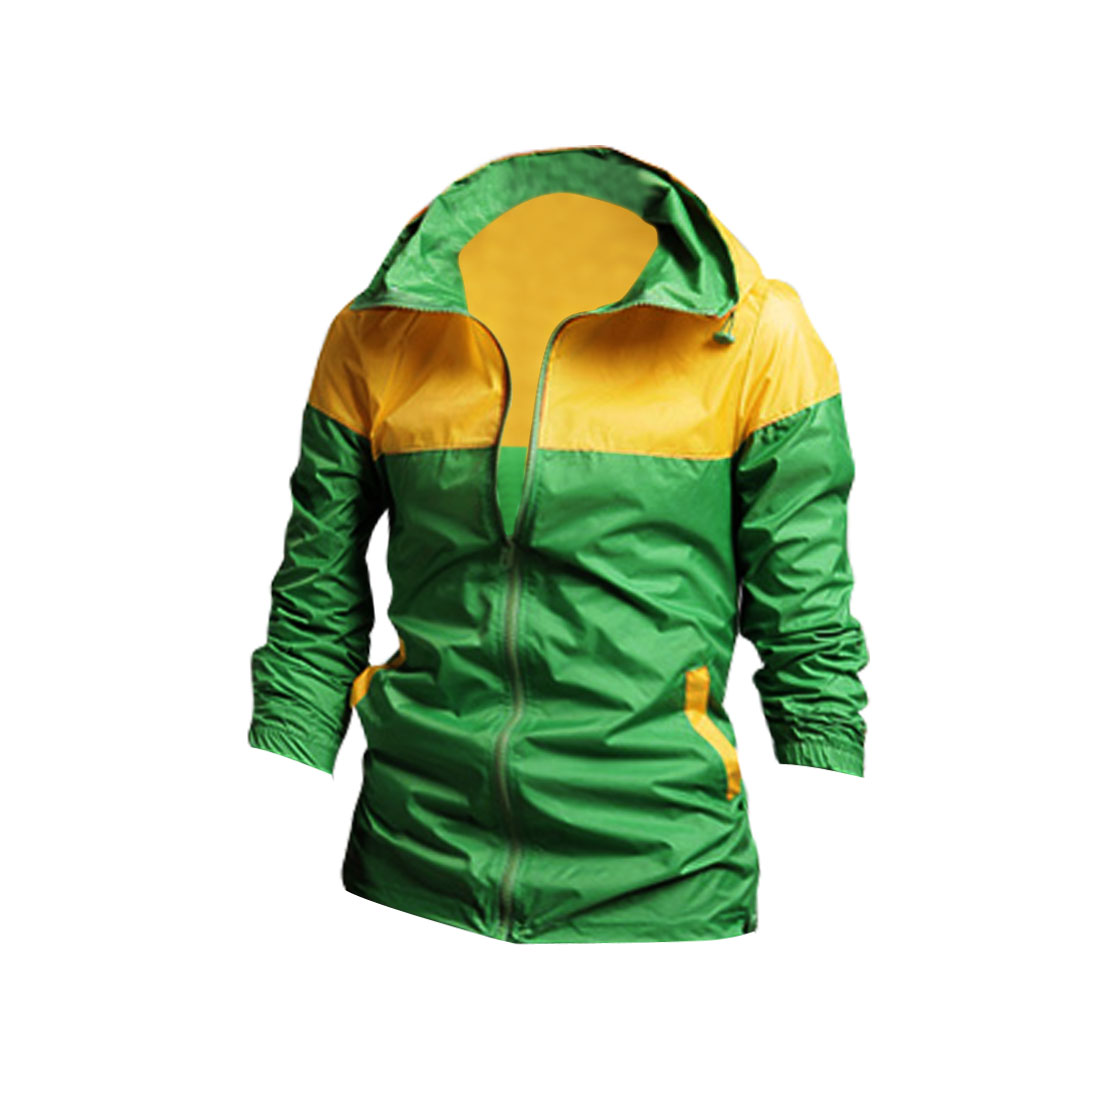 Mans Contrast Color Green Yellow Zip-Up Front Closure Casual Jacket Coat M